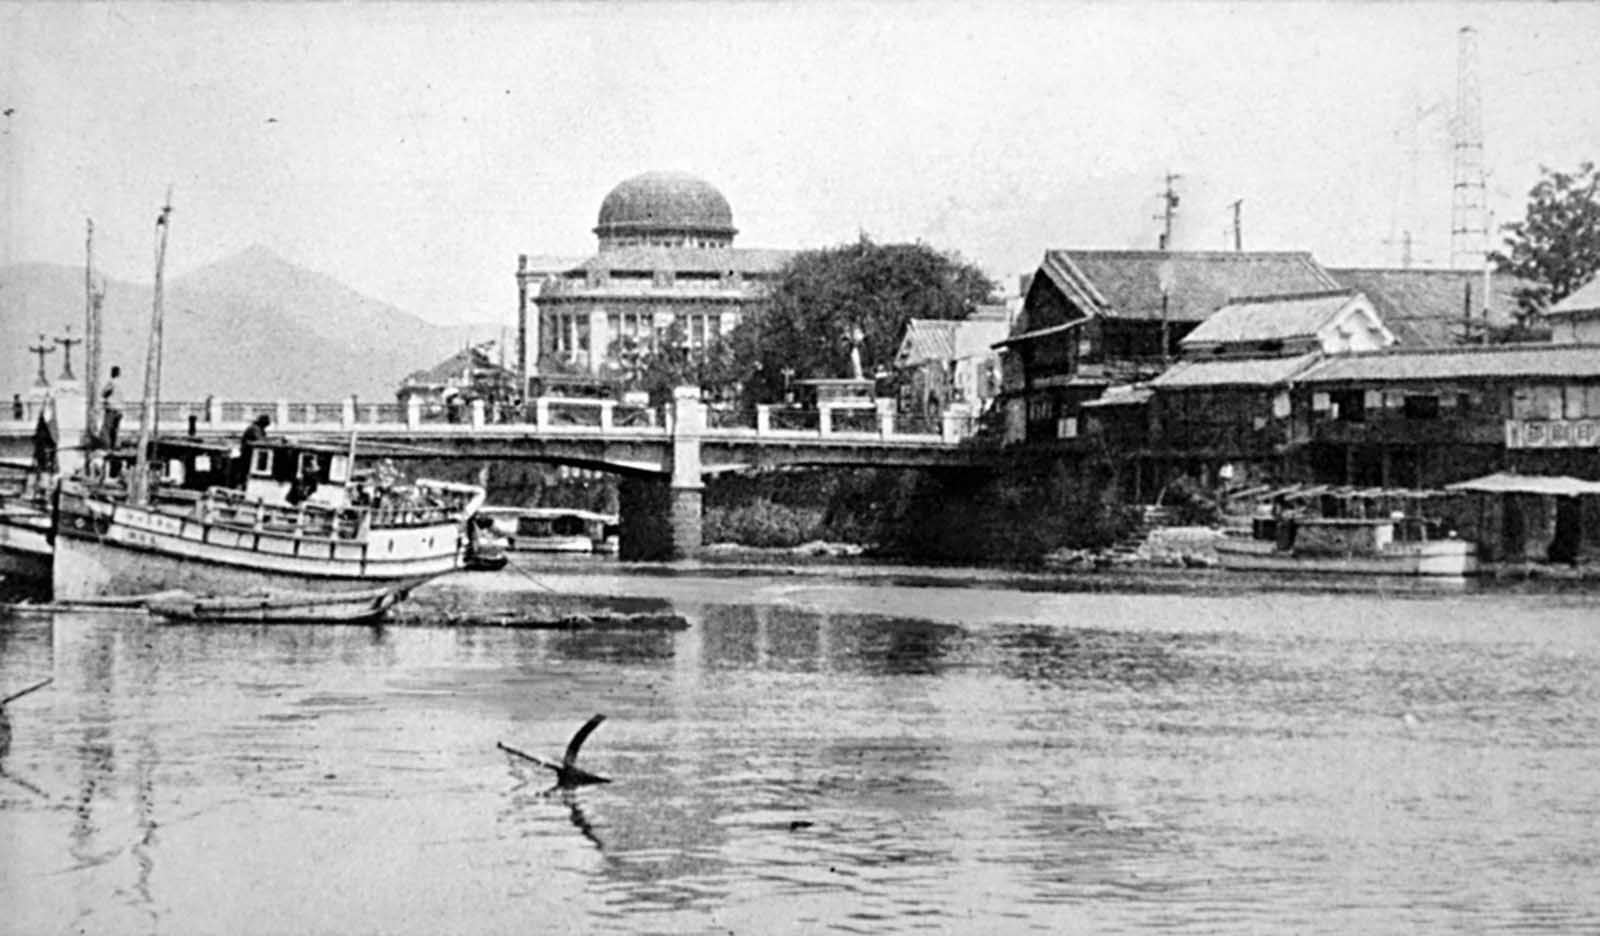 Looking upstream on the Motoyasugawa, toward the Product Exhibition Hall building (dome) in Hiroshima, before the bombing. The domed building was almost directly below the detonation, which occurred in mid-air, about 2,000 feet (600 meters) above this spot. Today, much of the building remains standing, and is known as the Atomic Bomb Dome, or the Hiroshima Peace Memorial.